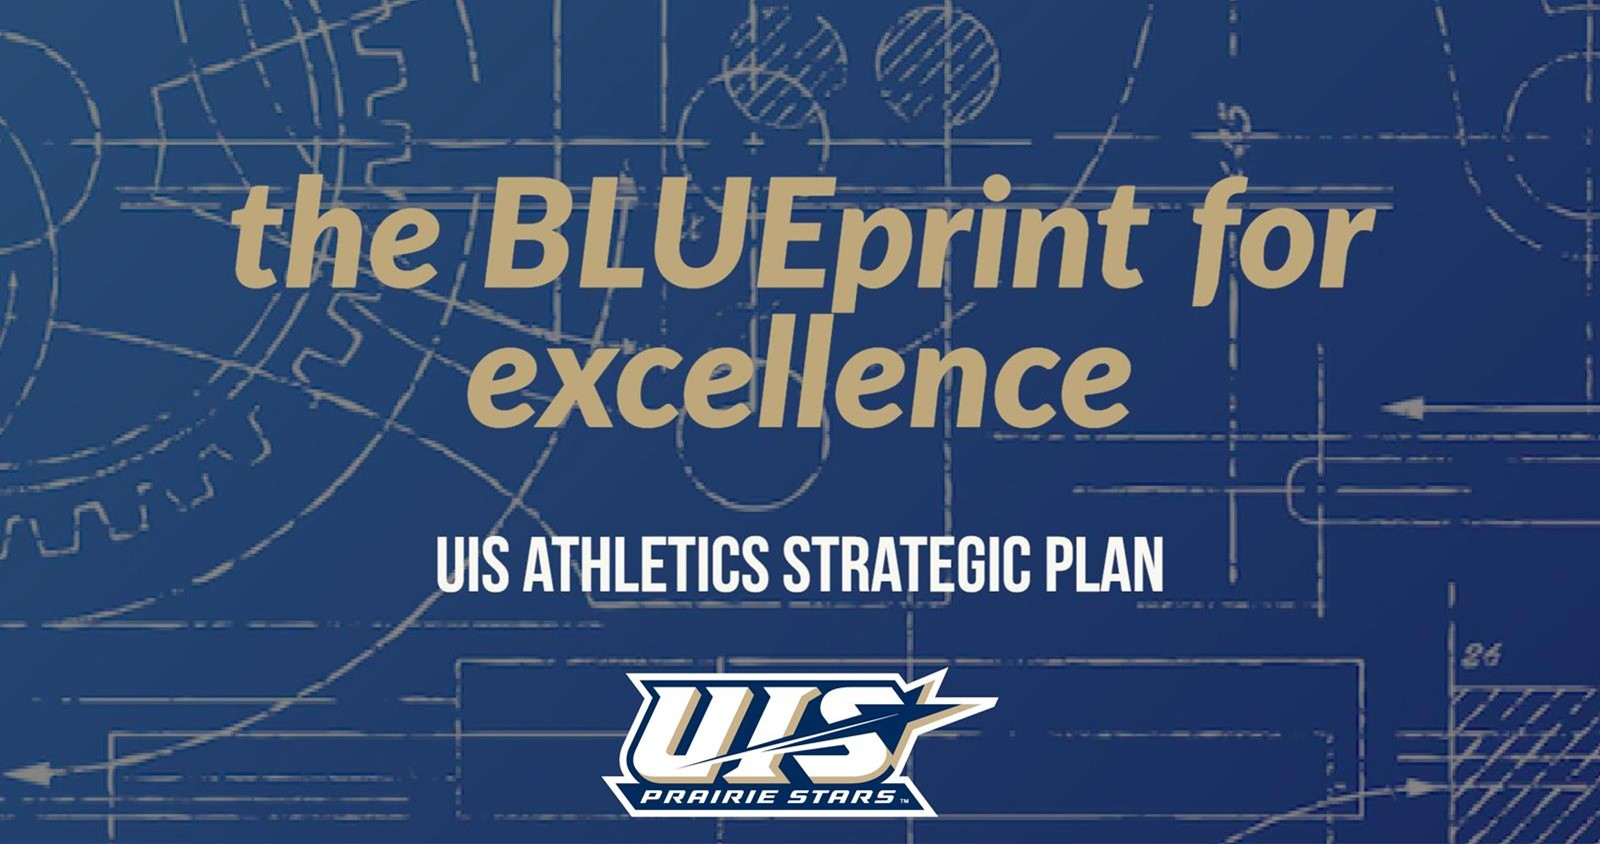 Uis news 2017 the university of illinois springfield department of athletics has unveiled their strategic plan the blueprint for excellence which lays out the malvernweather Gallery